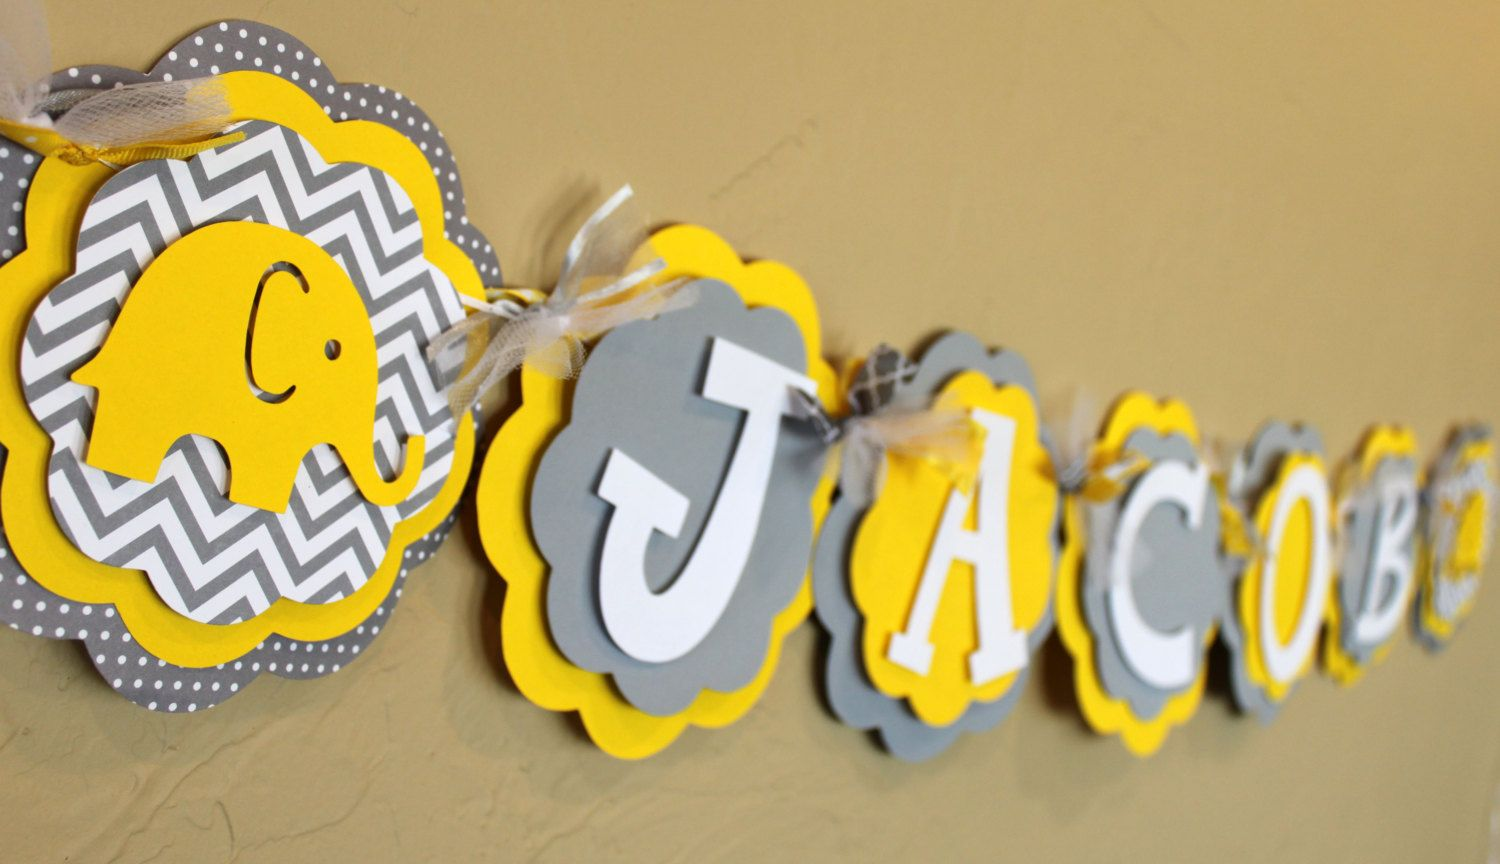 Find This Pin And More On Baby Showers By Smelissakell. Searching For The  Perfect Yellow Gray ...